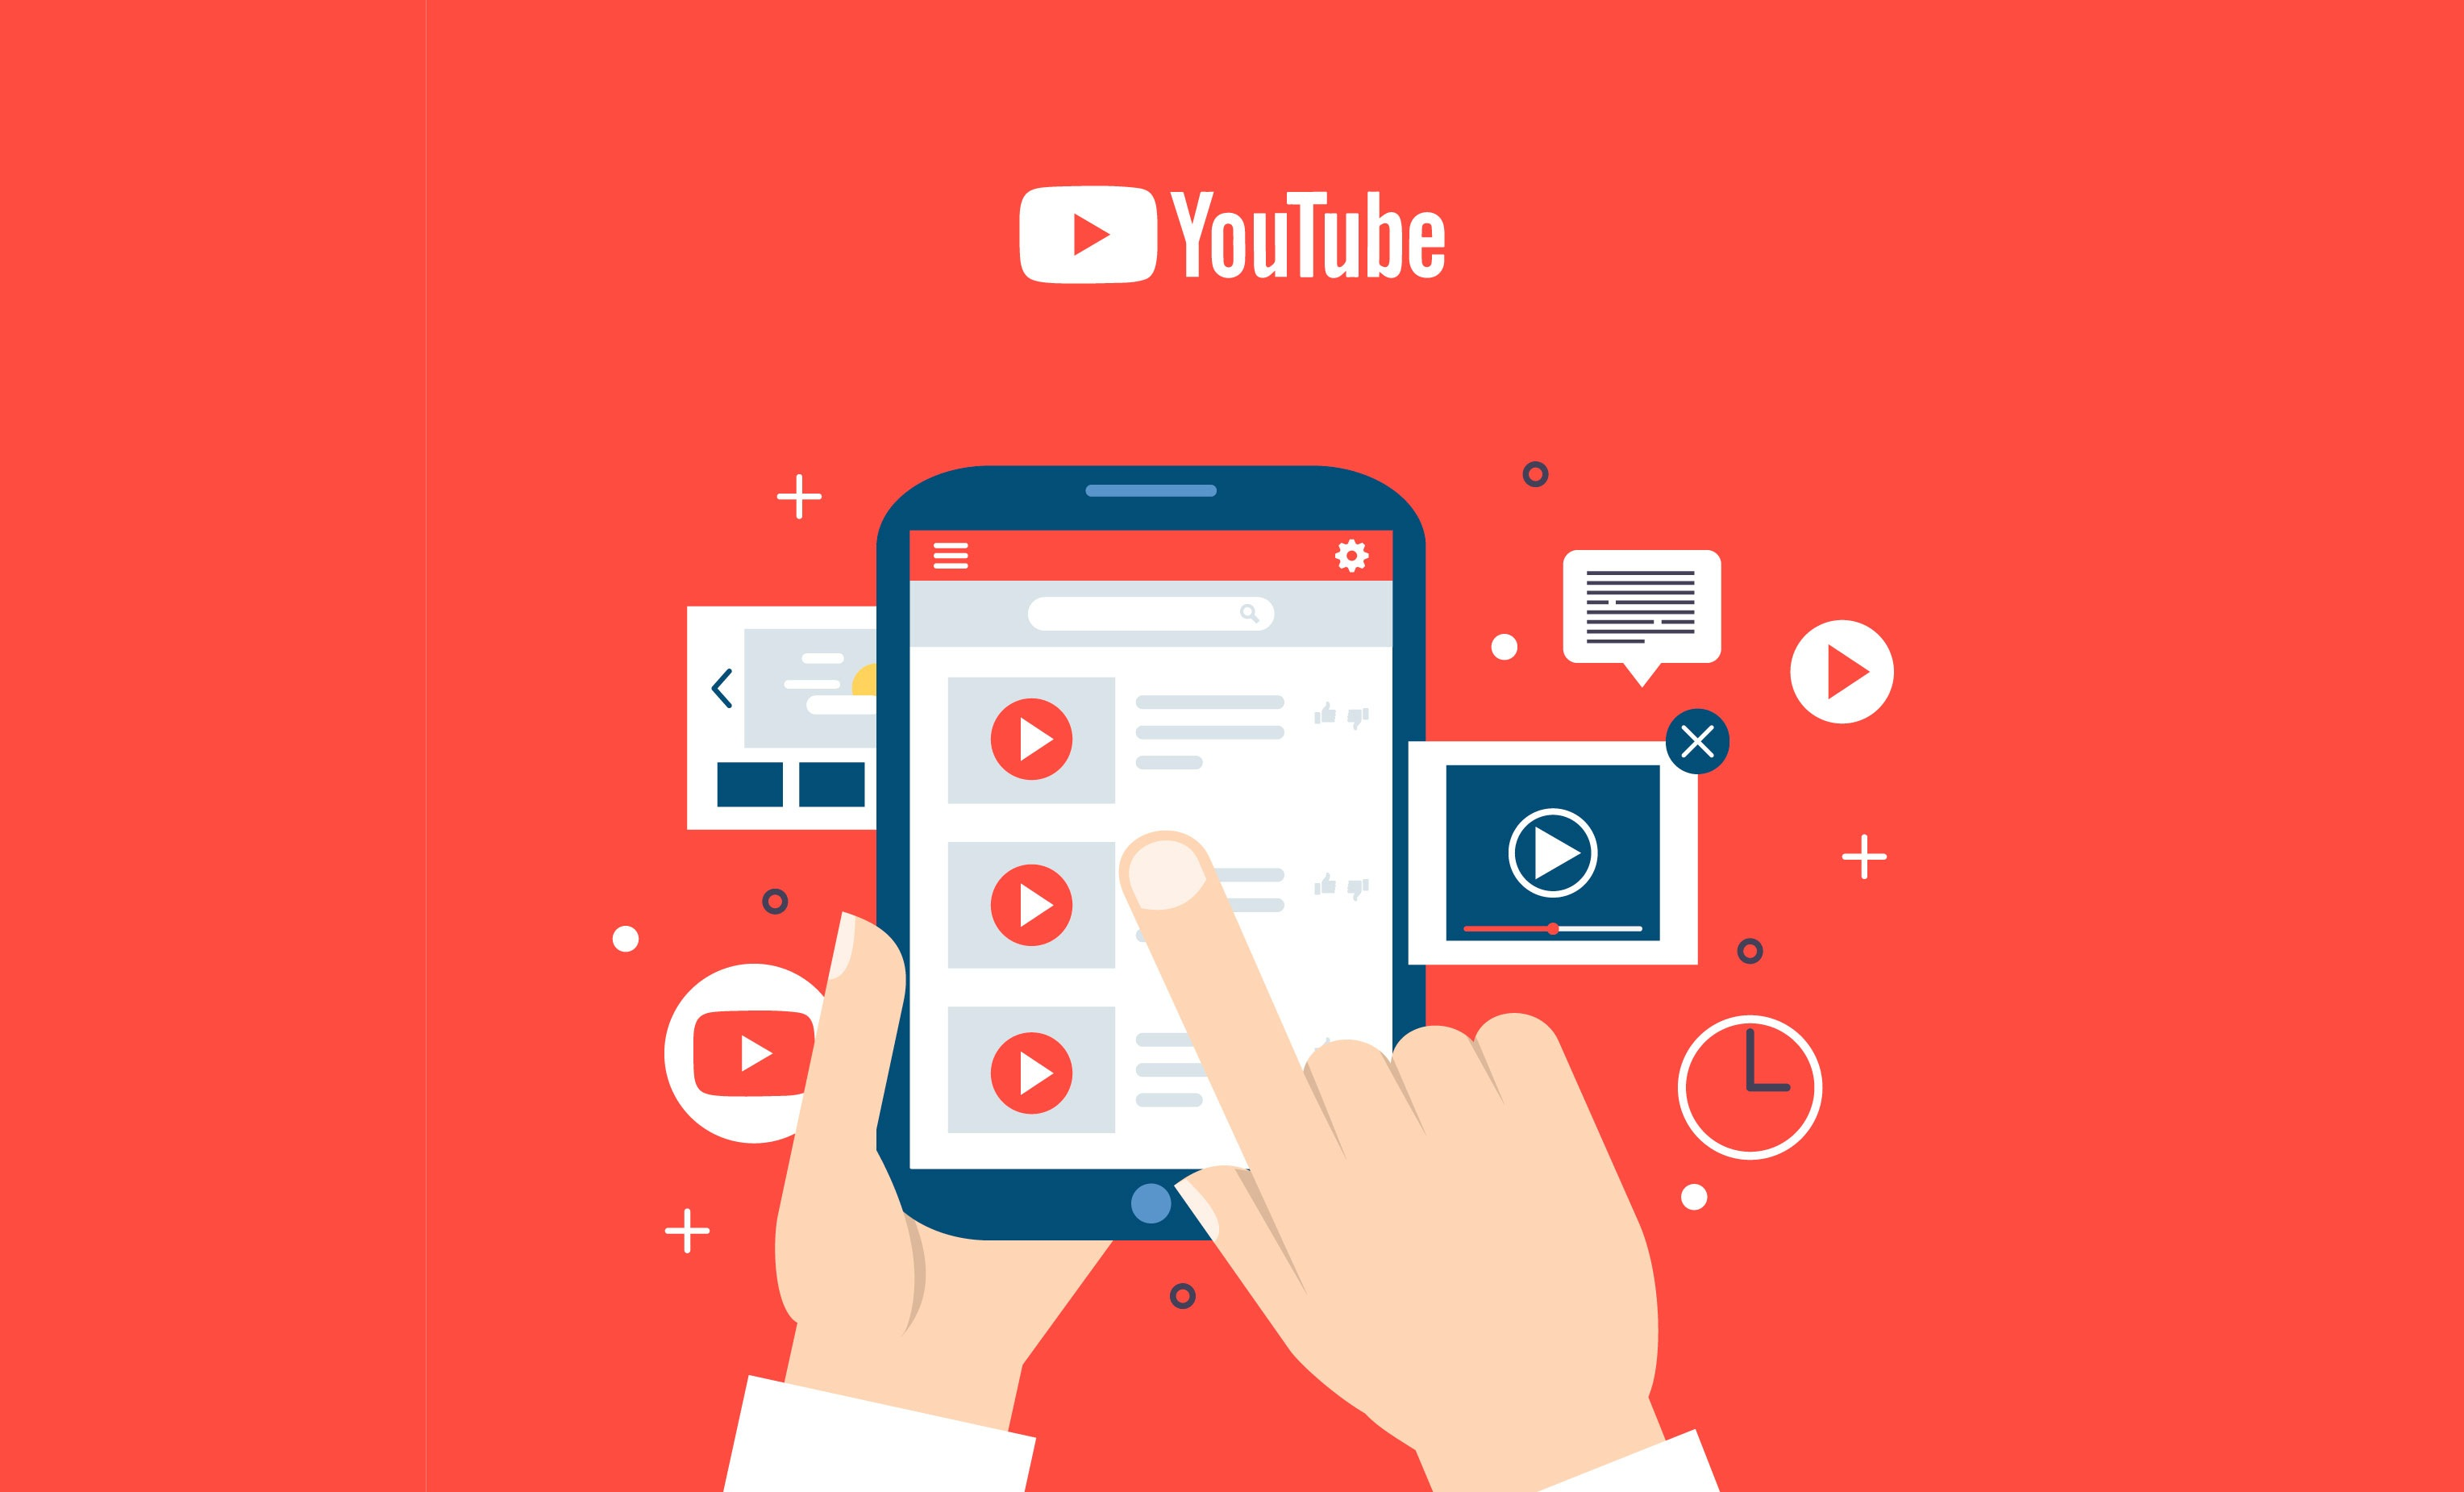 YouTube Marketing Tips- How to get more views & subscribers